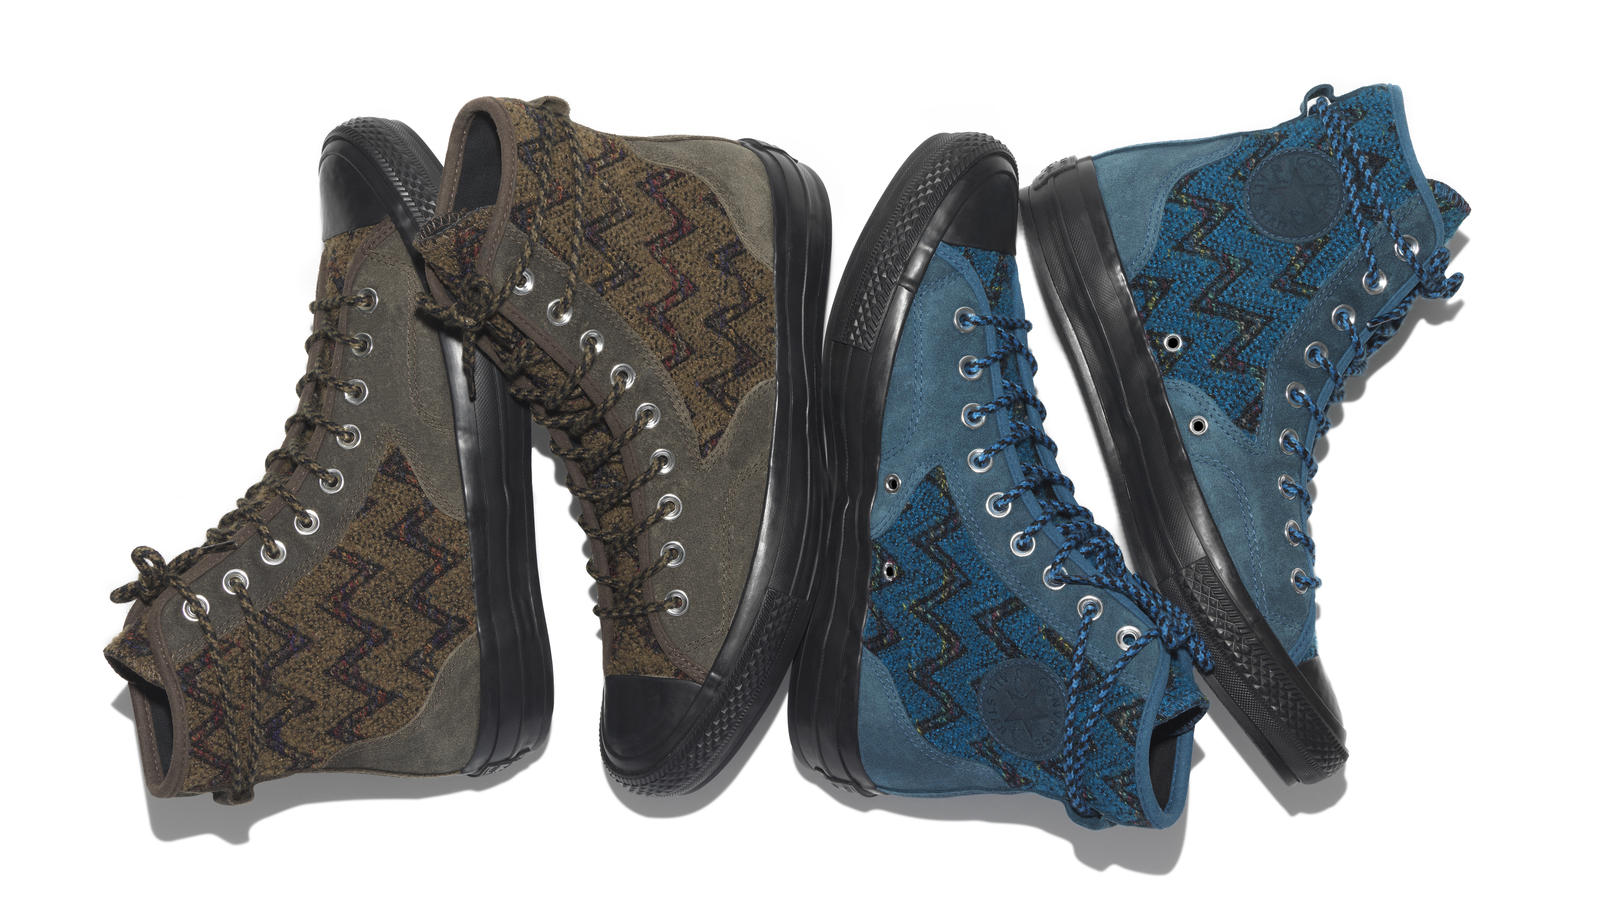 The New Converse Chuck Taylor All Star